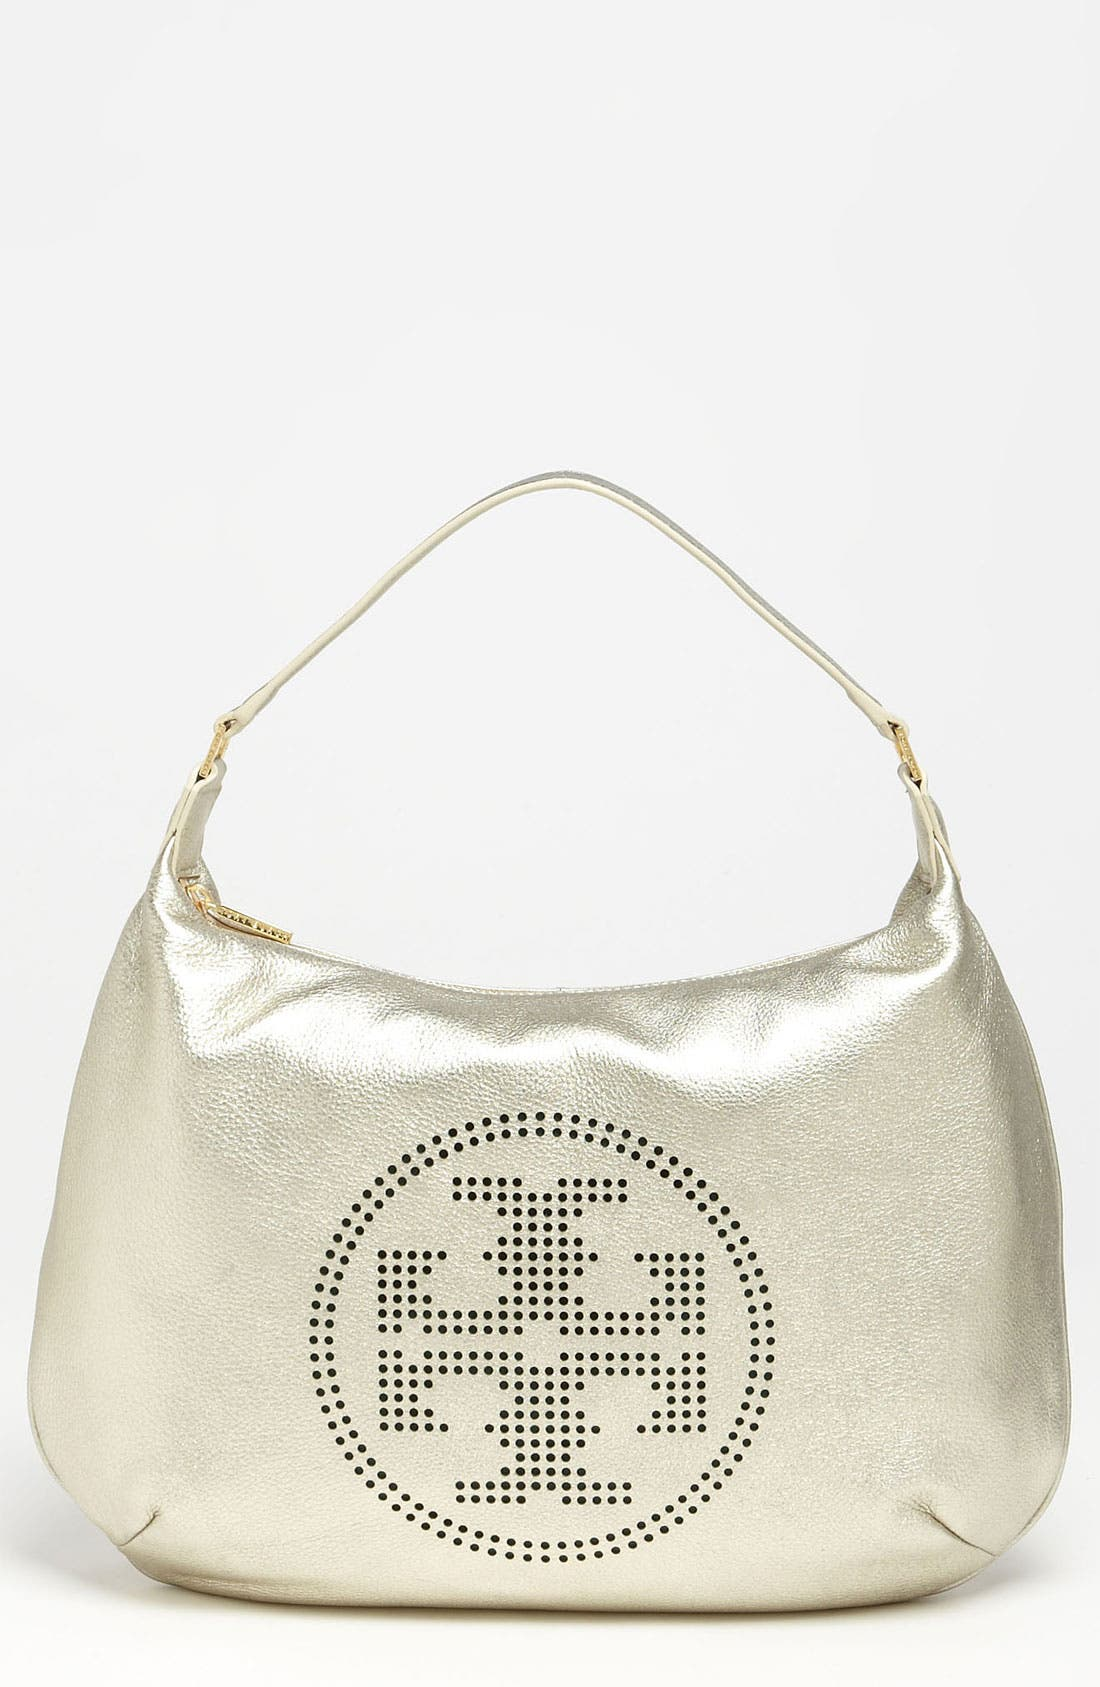 Main Image - Tory Burch Perforated Logo Metallic Leather Hobo